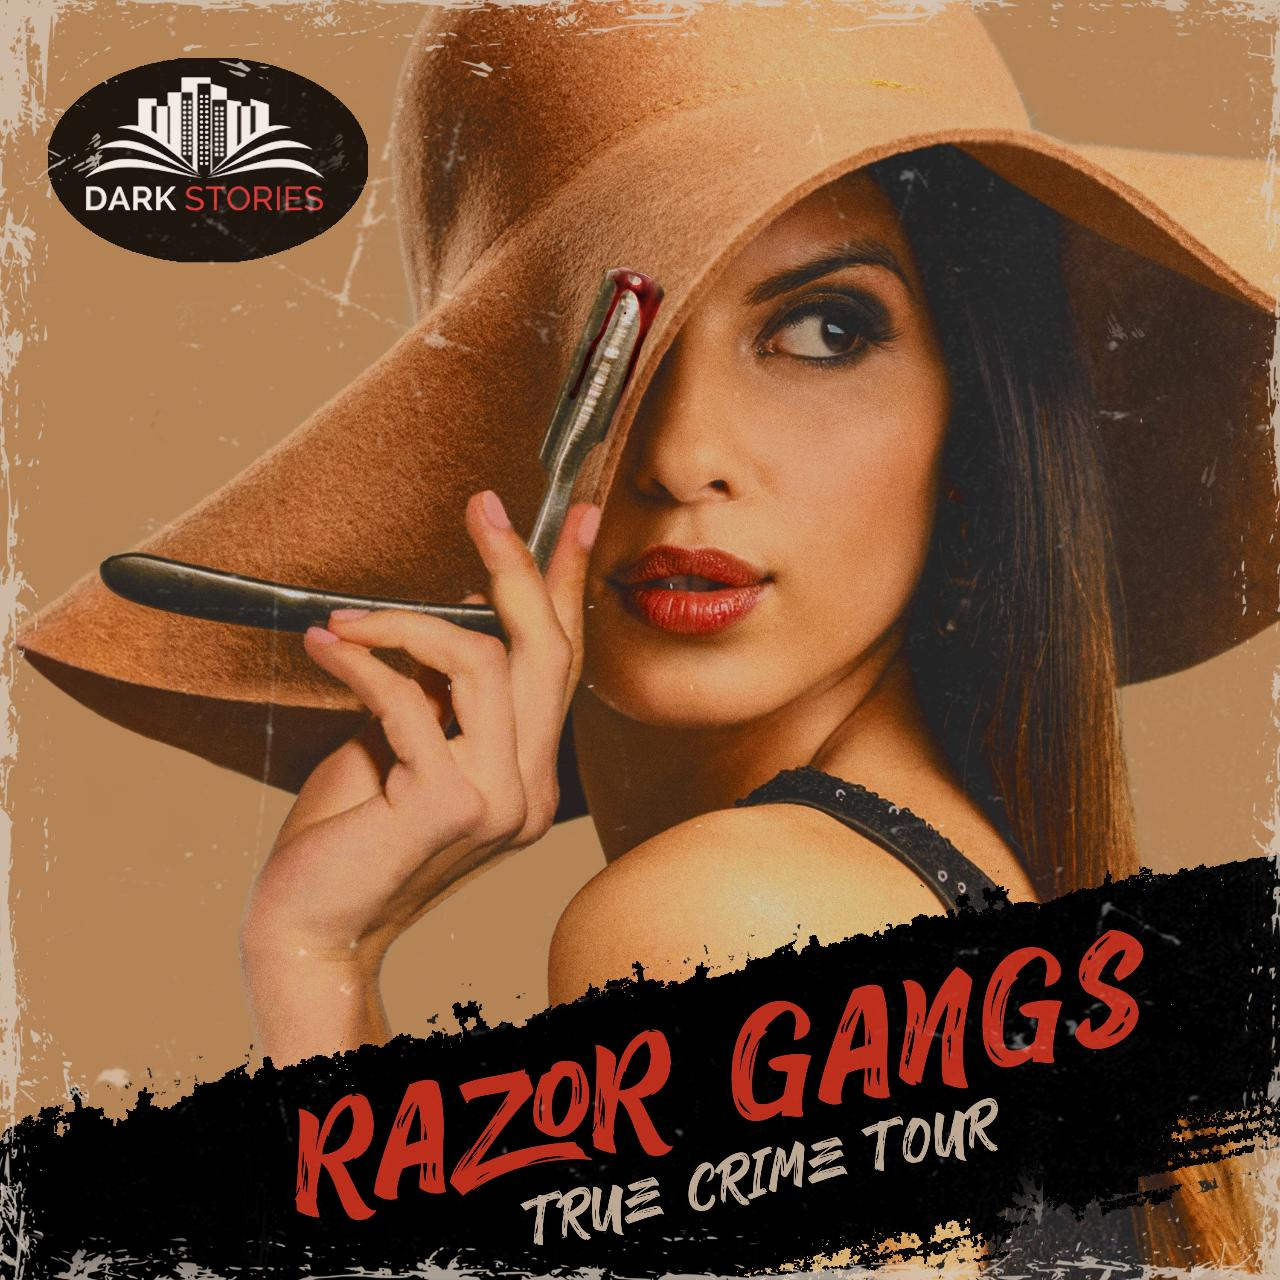 Sydney's - Razor Gang True Crime Tour